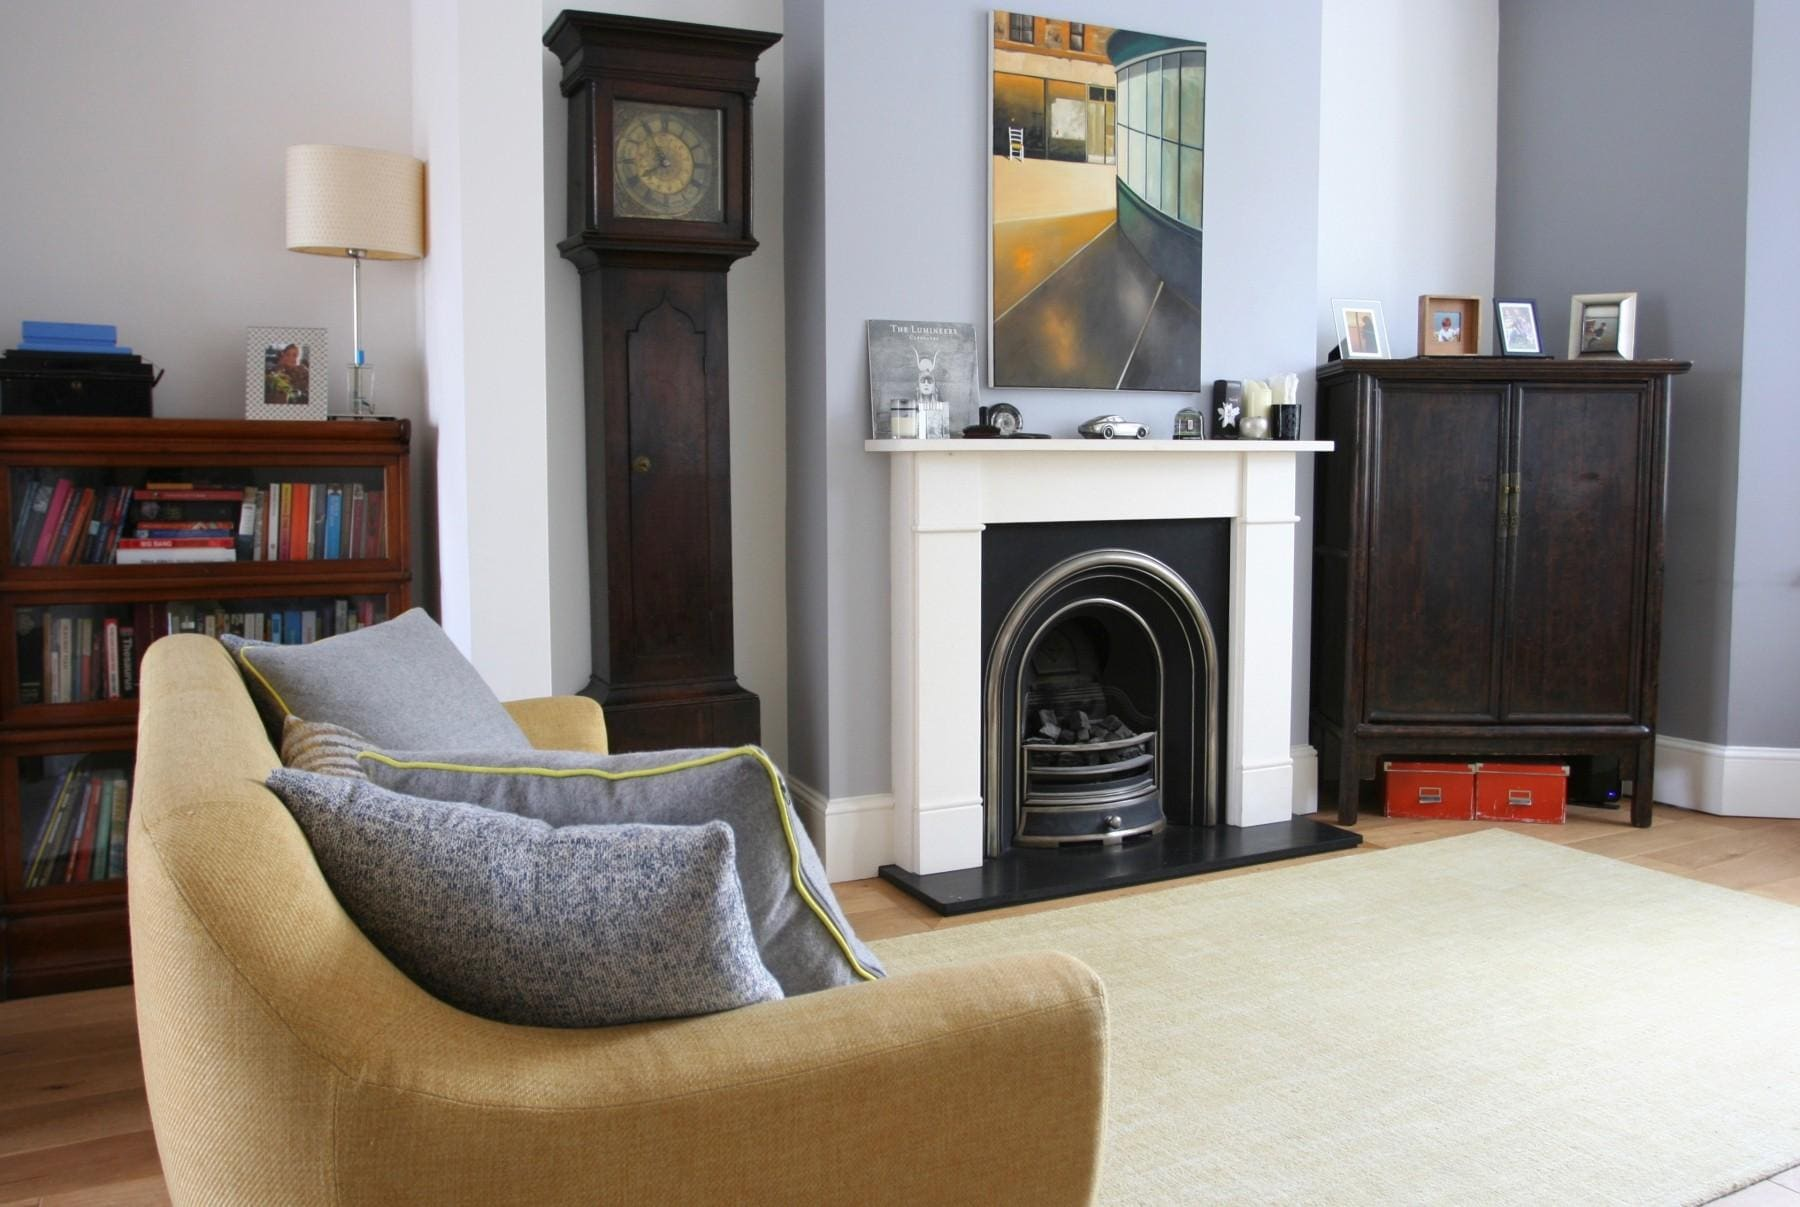 Property Image 2 - Modern Wandsworth Home by East Putney Station